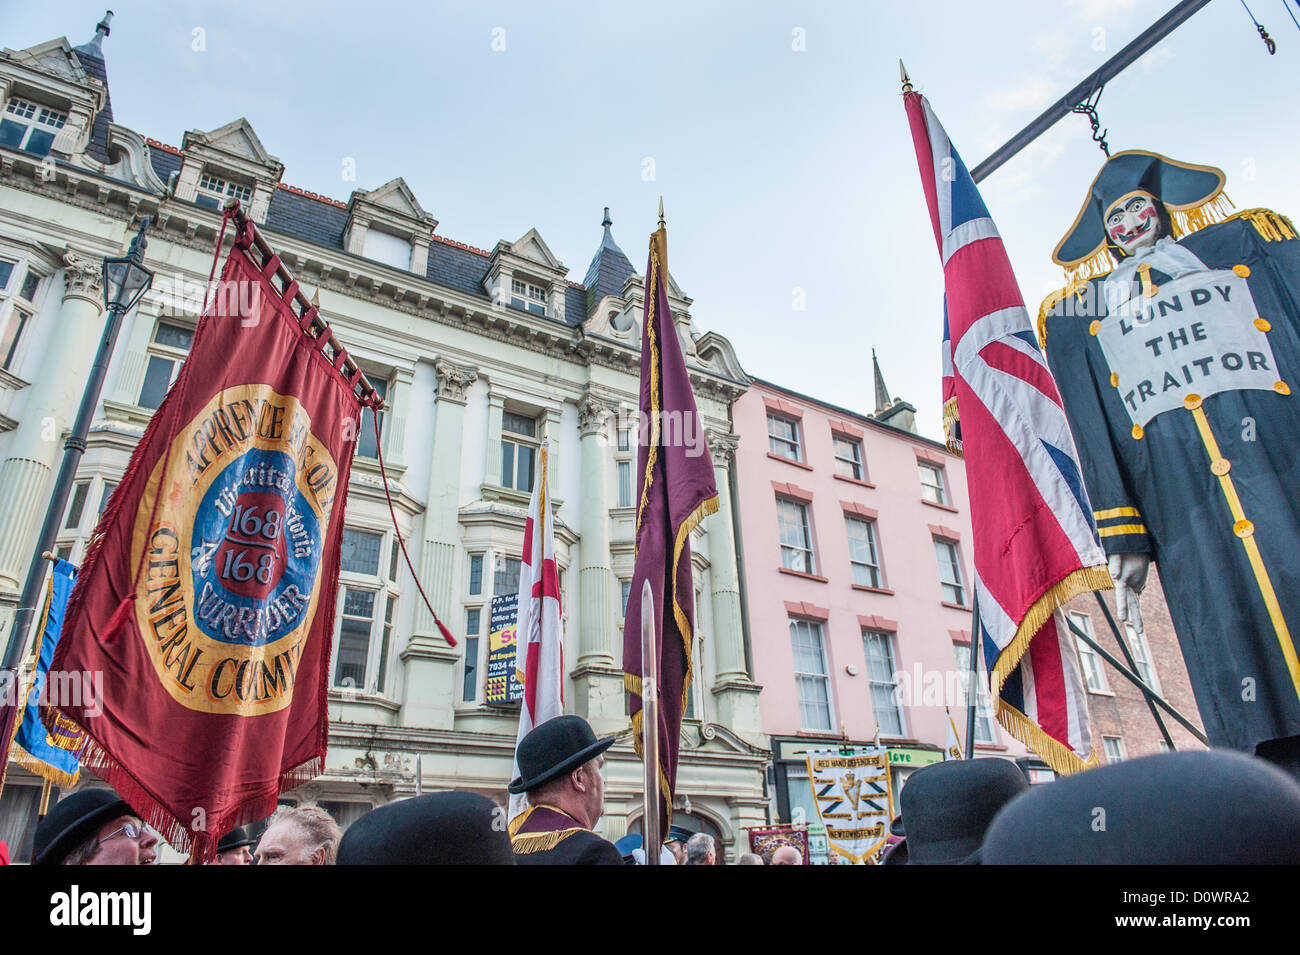 Londonderry, Northern Ireland, UK. 1st December 2012. An effigy of Lundy surrounded by loyalist flags in Londonderry. Stock Photo